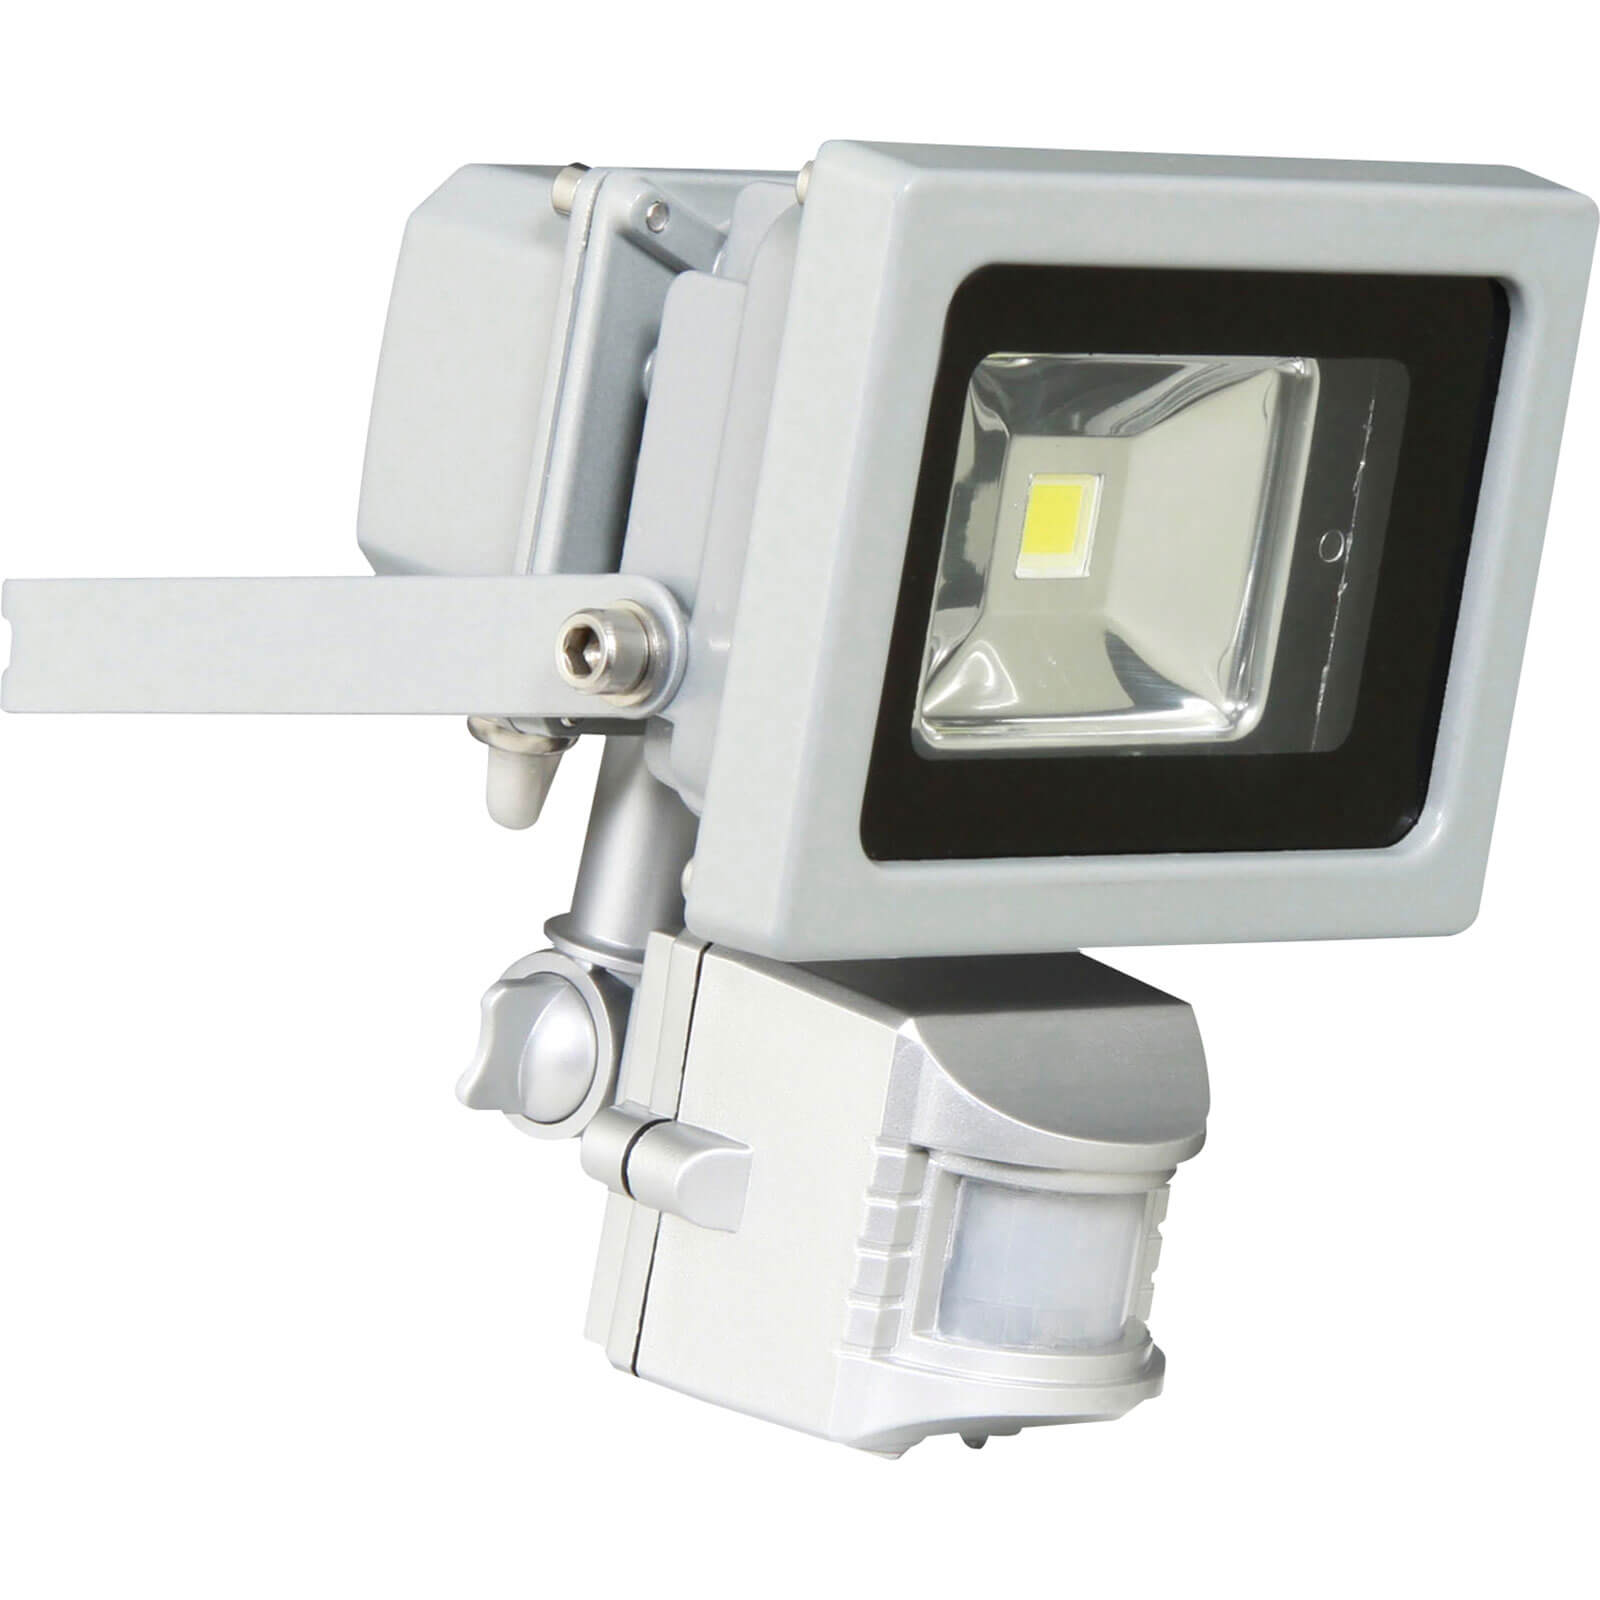 Byron XQ1162 SMD LED Floodlight 800 Lumens with PIR Motion Sensor 10w 240v